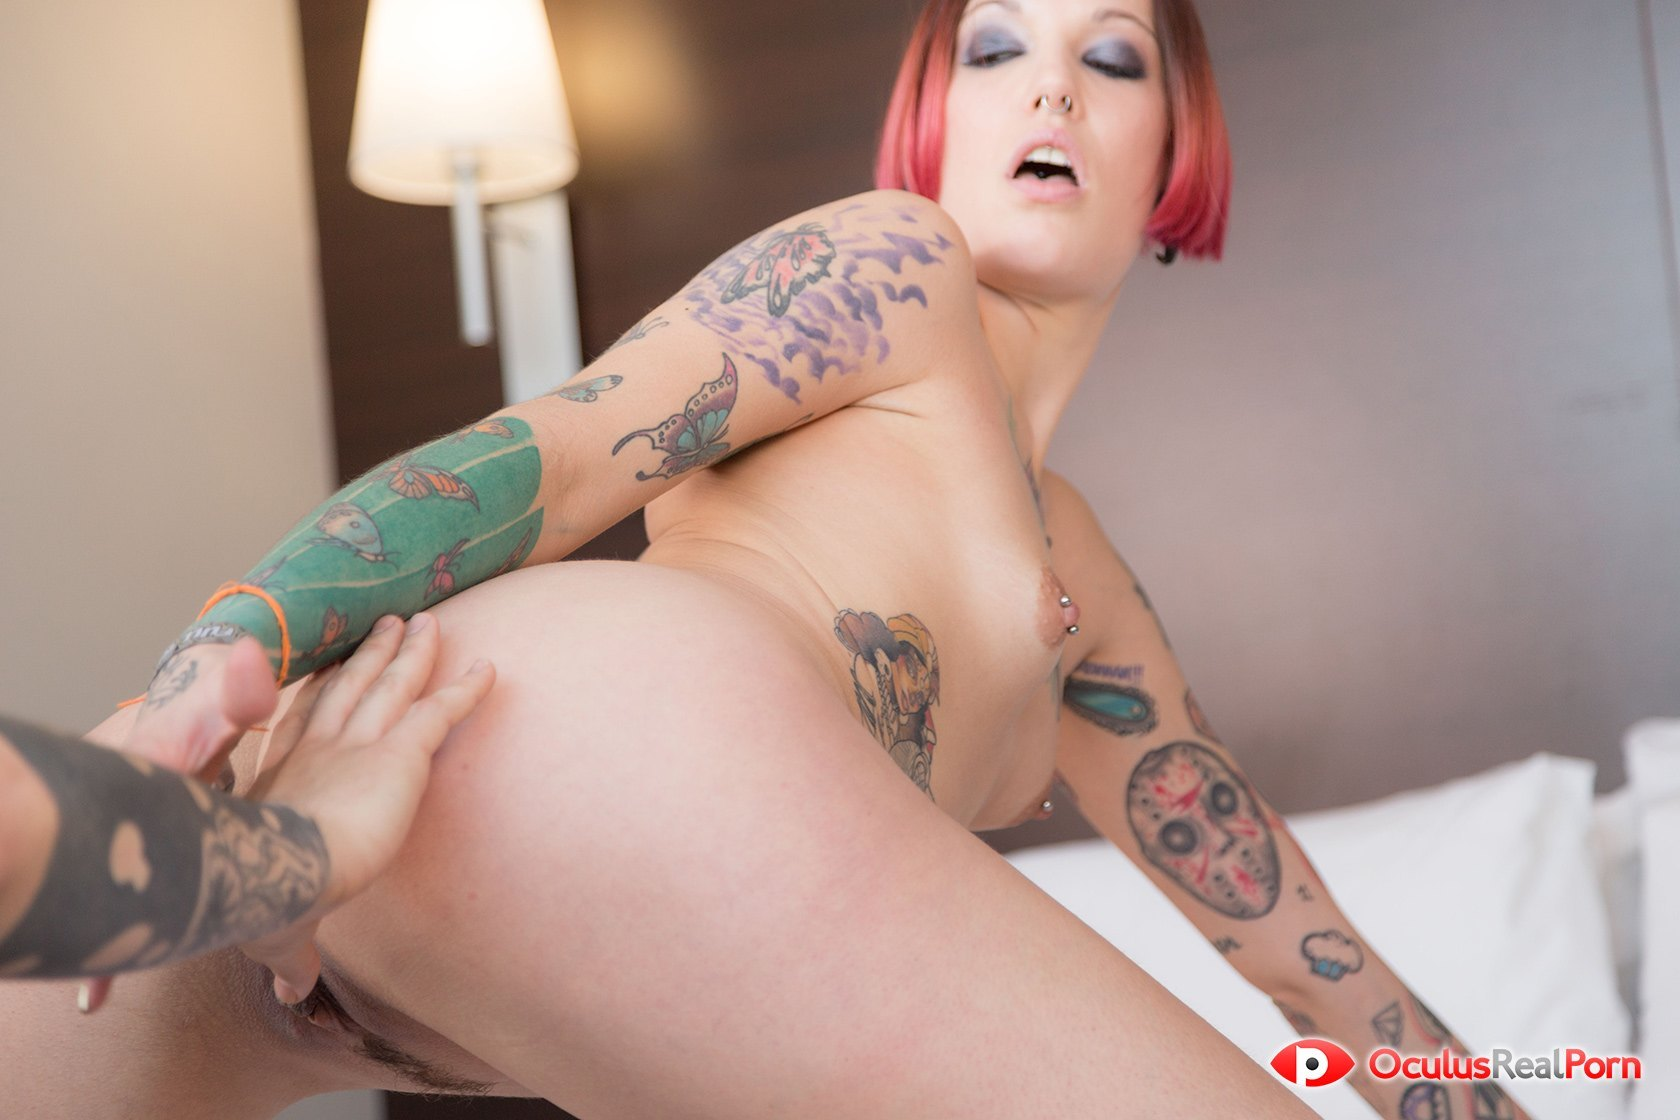 Tattoo Blowjob – Part 1- Horny Dancing Silvia - VR Porn ...